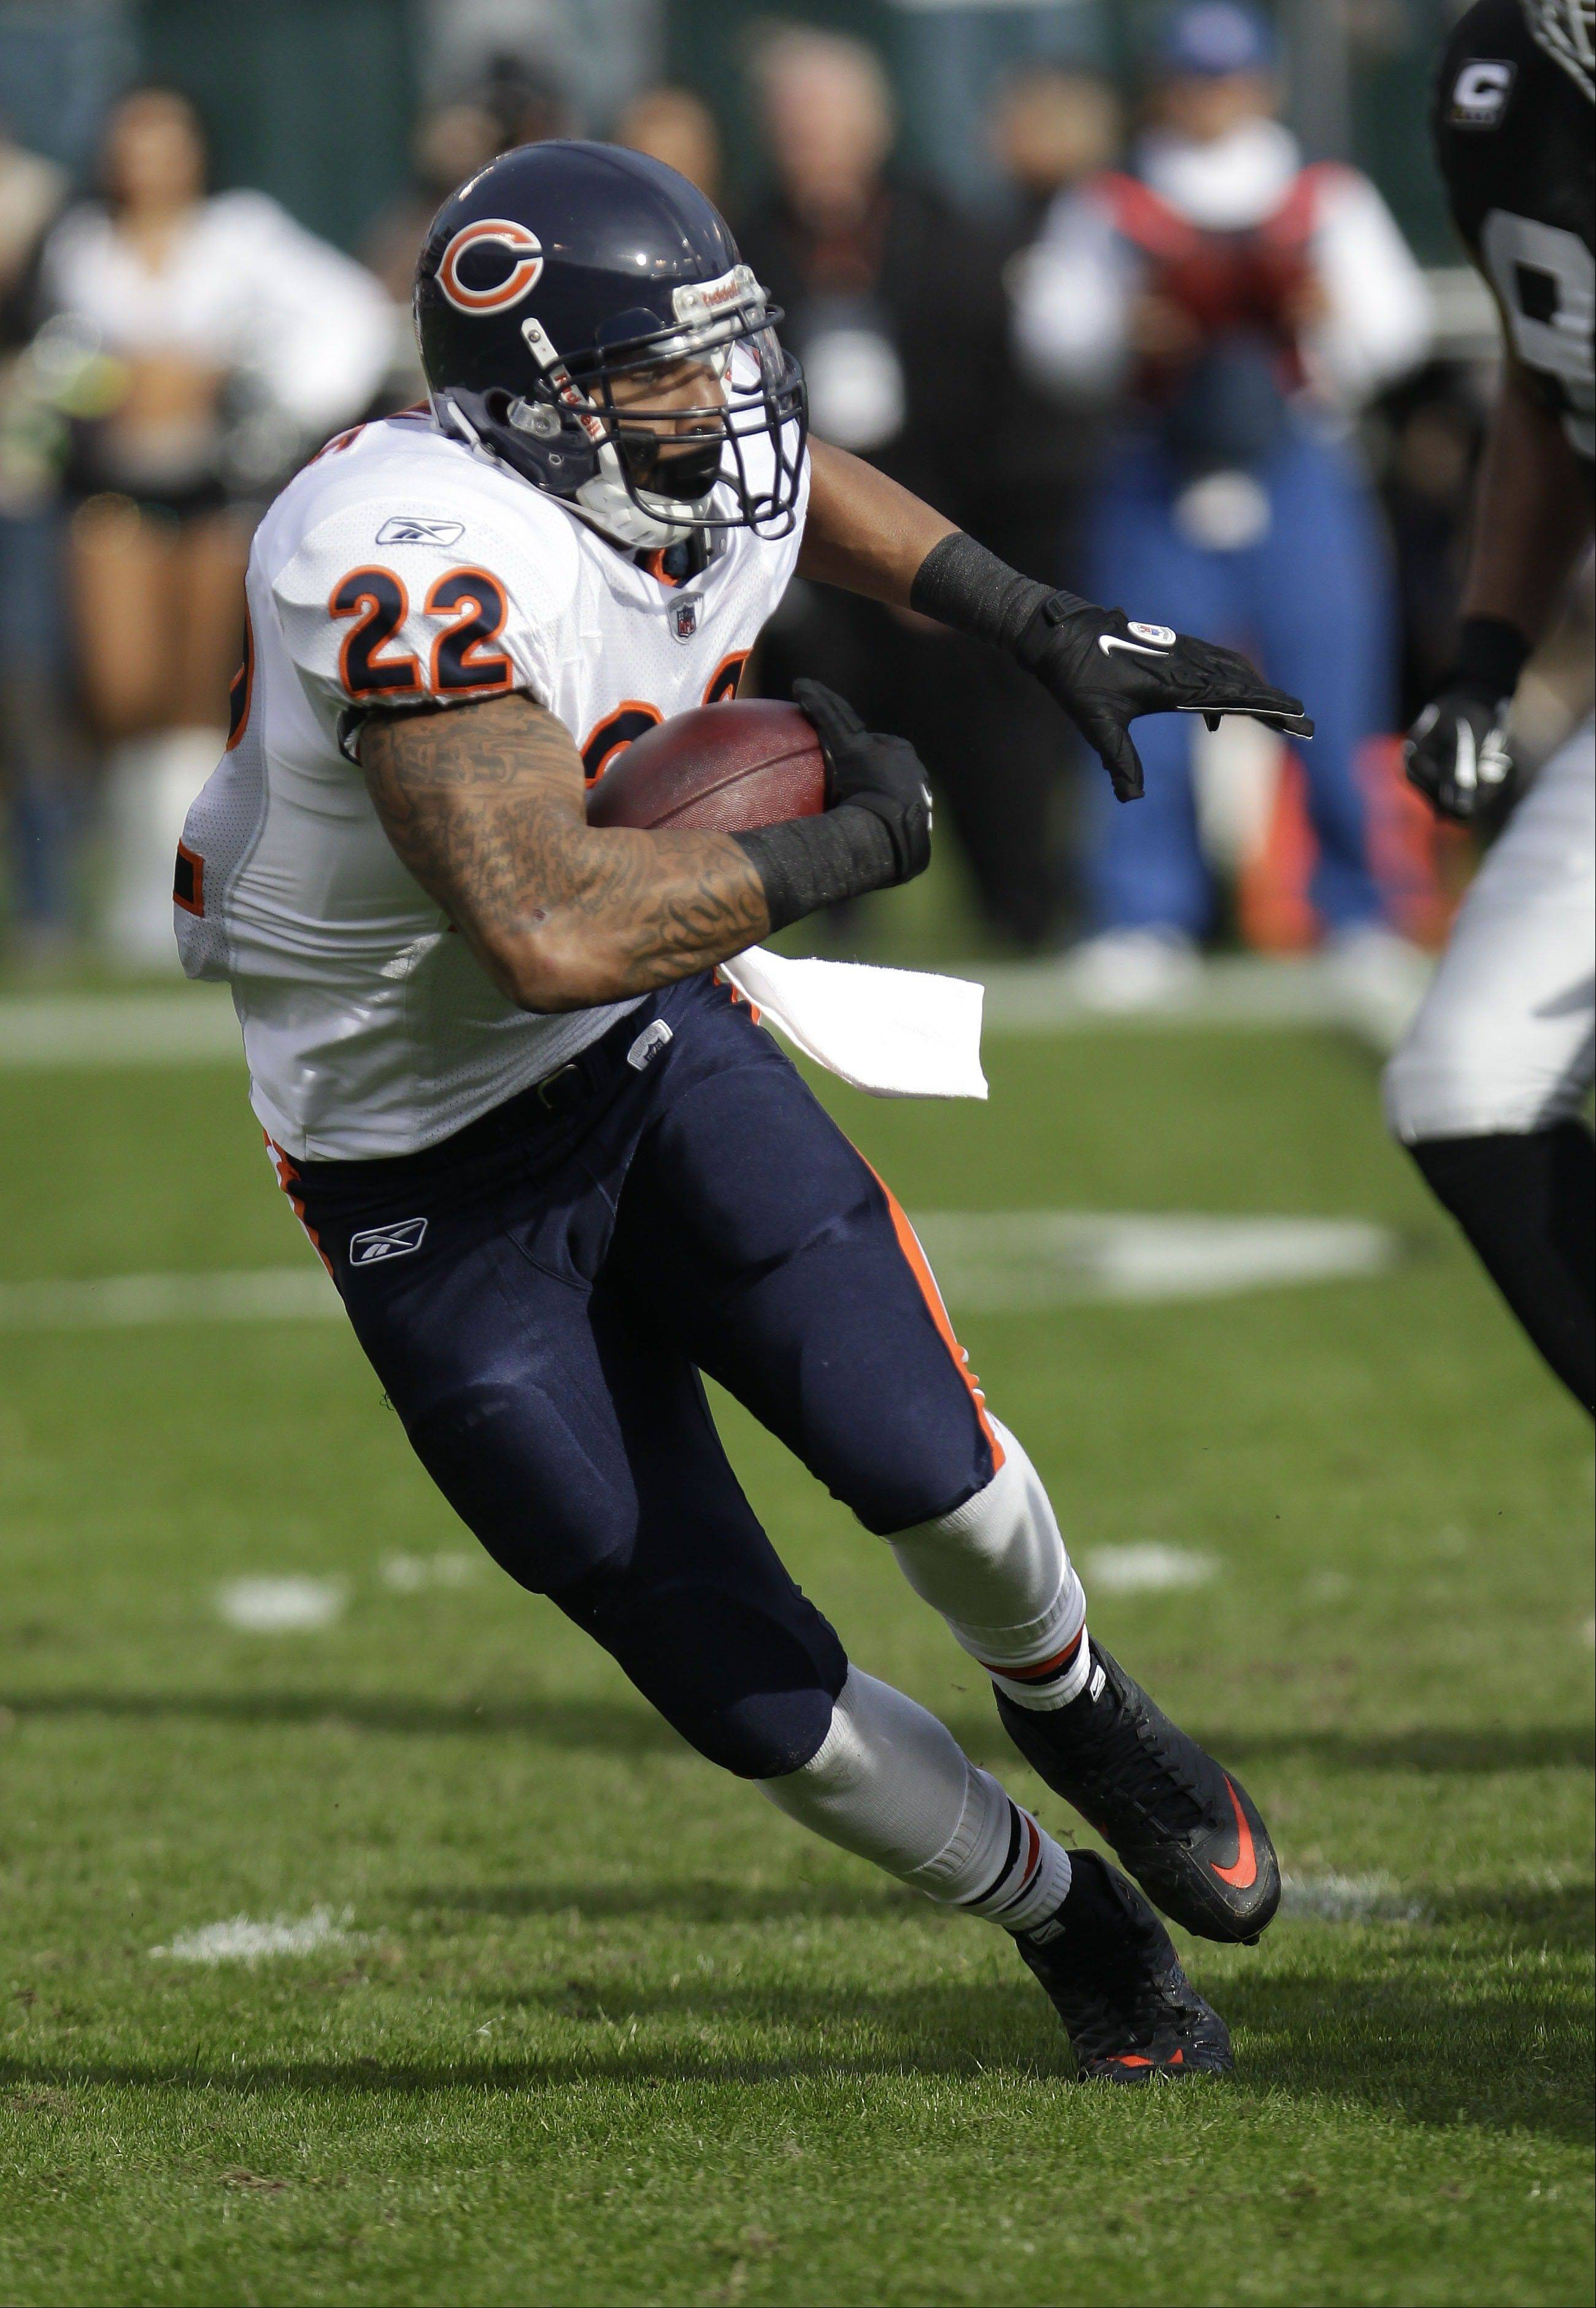 Chicago Bears running back Matt Forte could be feeling the pressure with quarterback Jay Cutler out for at least three weeks. Forte is seventh in the NFL with 533 rushing yeards and he's averaging 21.6 touches per game.